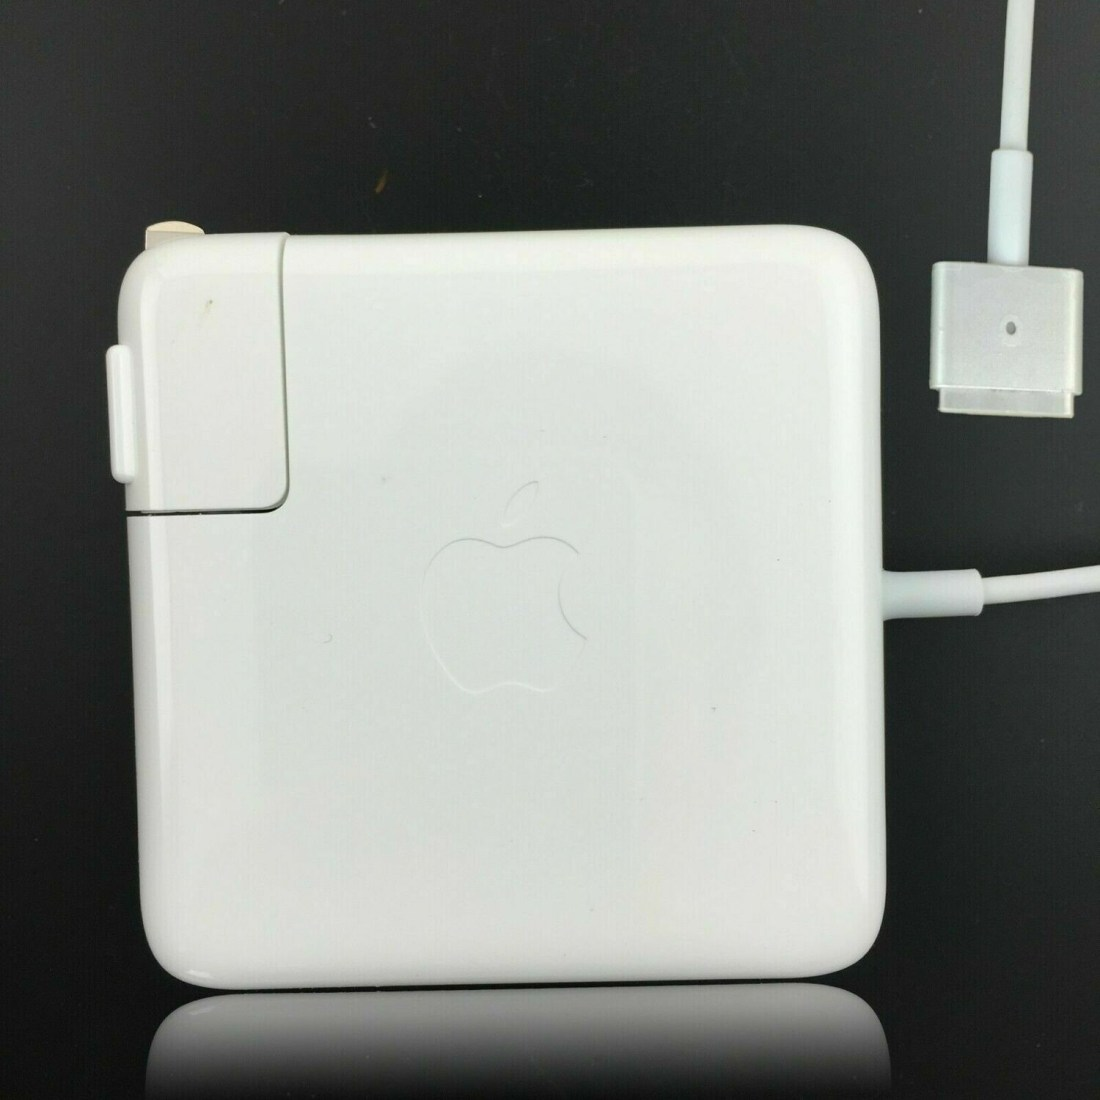 New Apple Magsafe 2 85 Watt, For 15